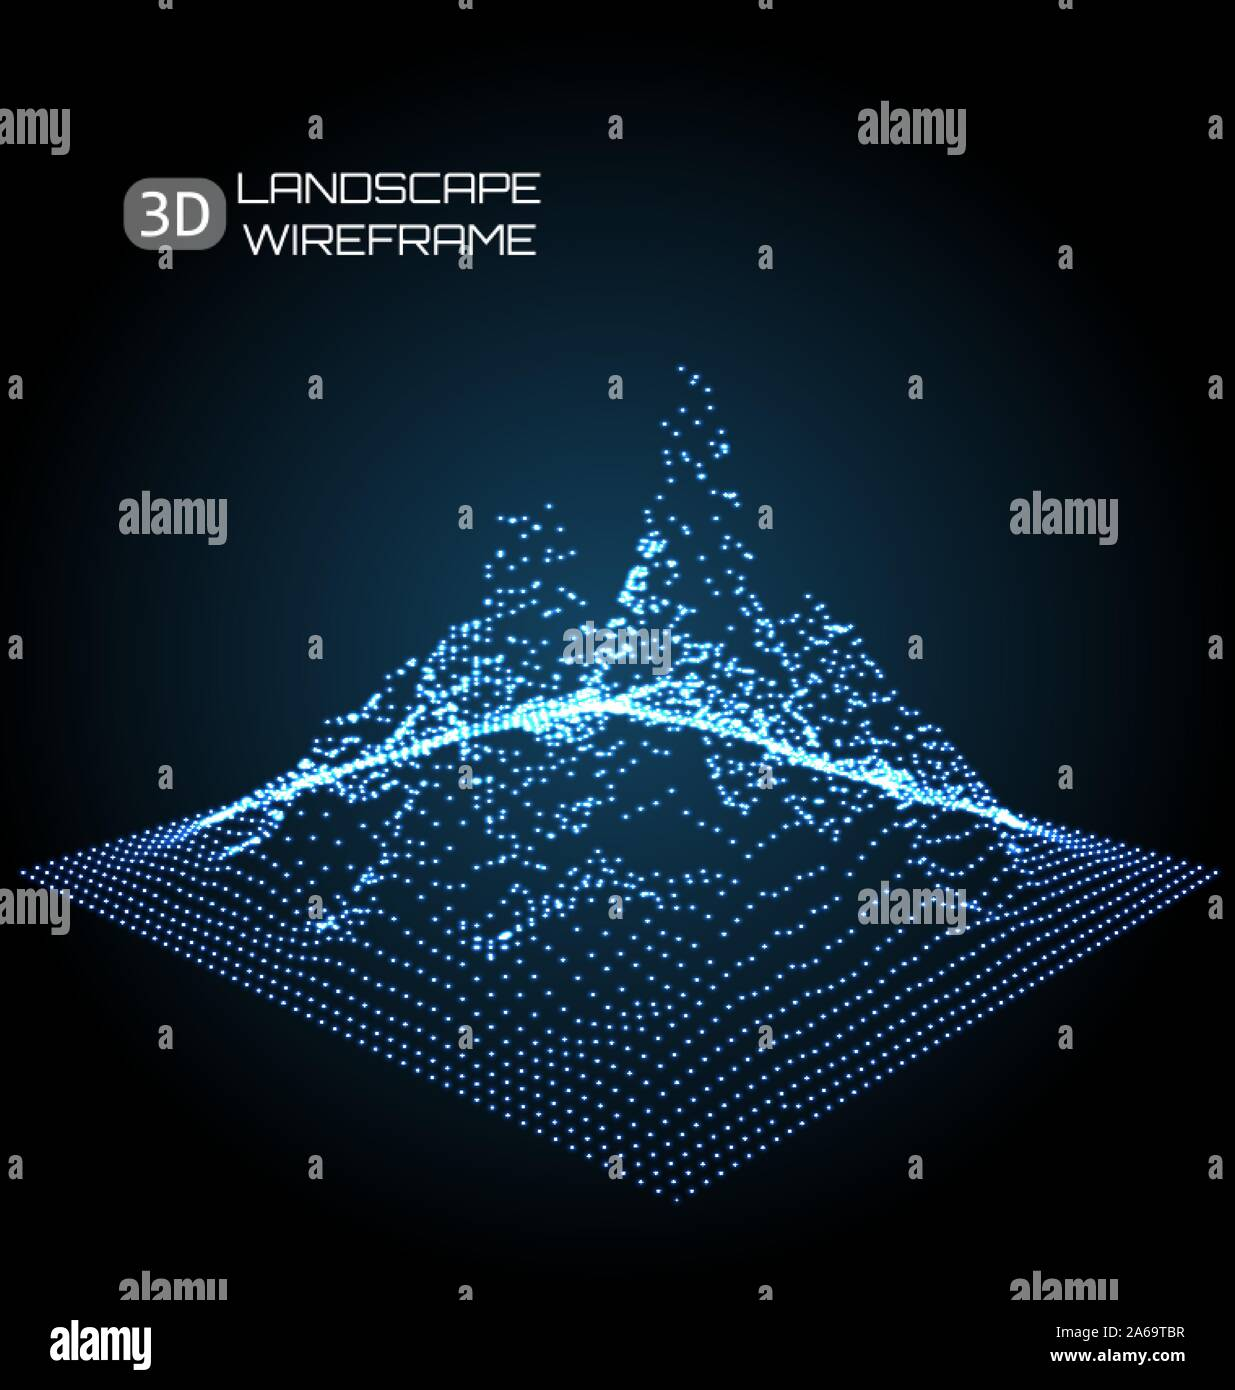 Wireframe Landscape Pattern. Big Data. Geometric Perspective Texture - Illustration Vector Stock Vector